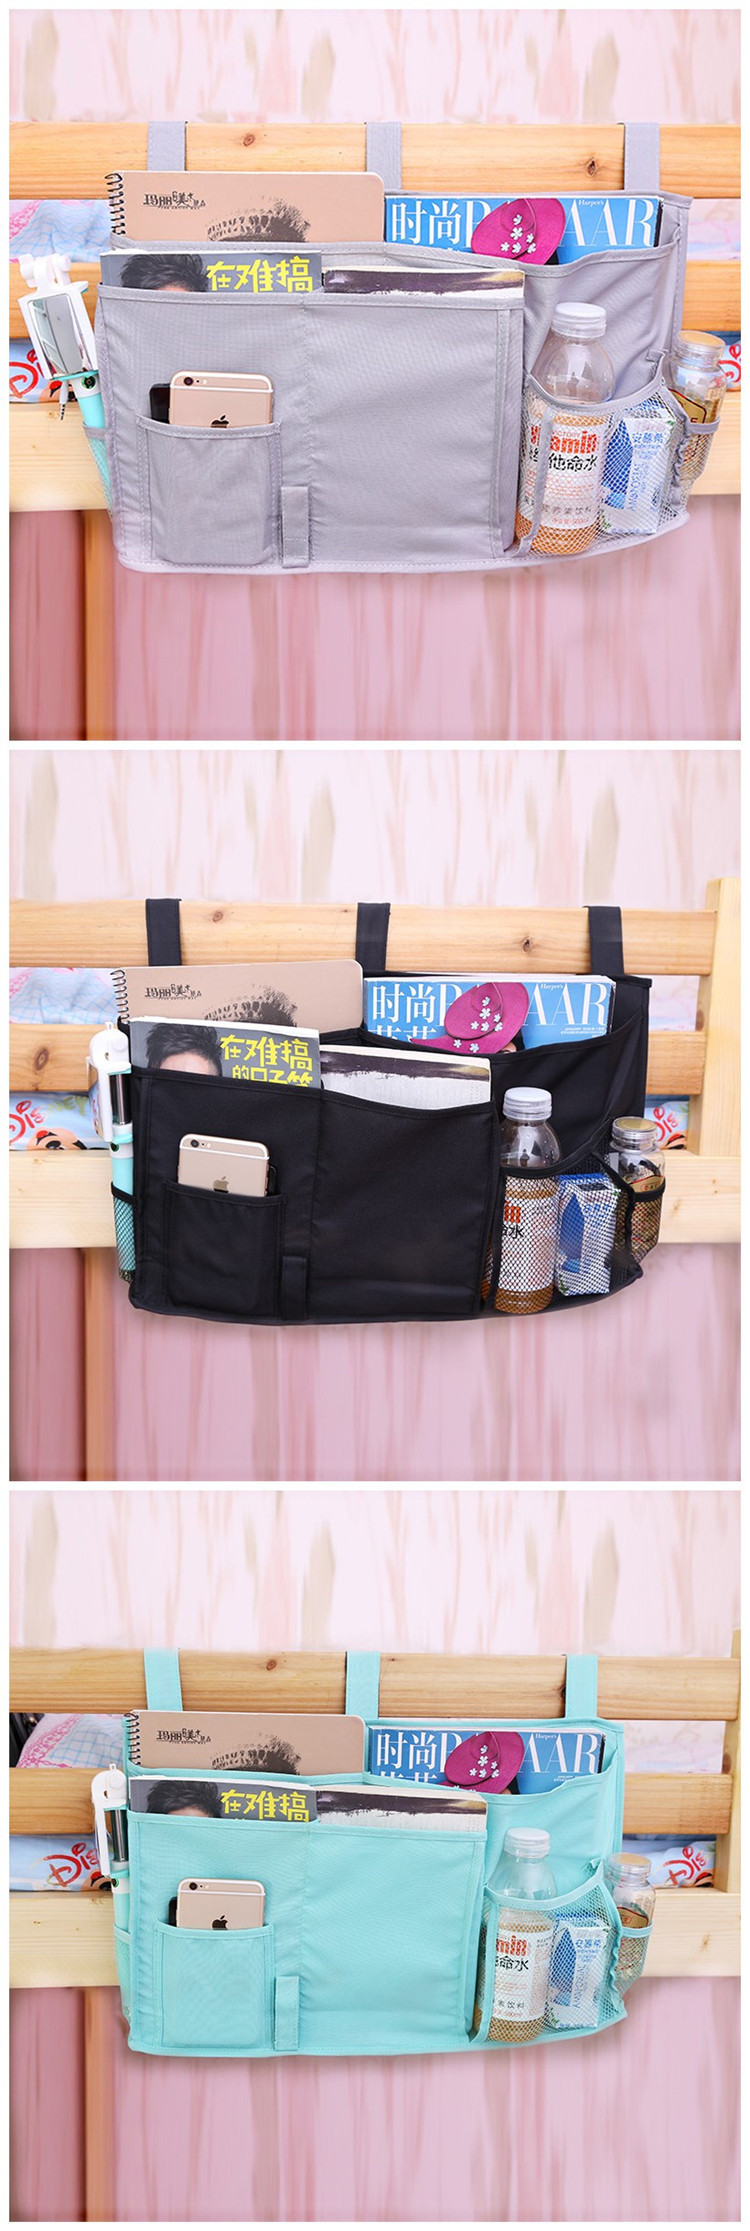 50x30cm Bedside Bag Oxford Cloth Bedroom StorageBag  : 8a9b27cc bd58 4723 a532 95a2dd0a0e3d from alexnld.com size 750 x 2231 jpeg 393kB